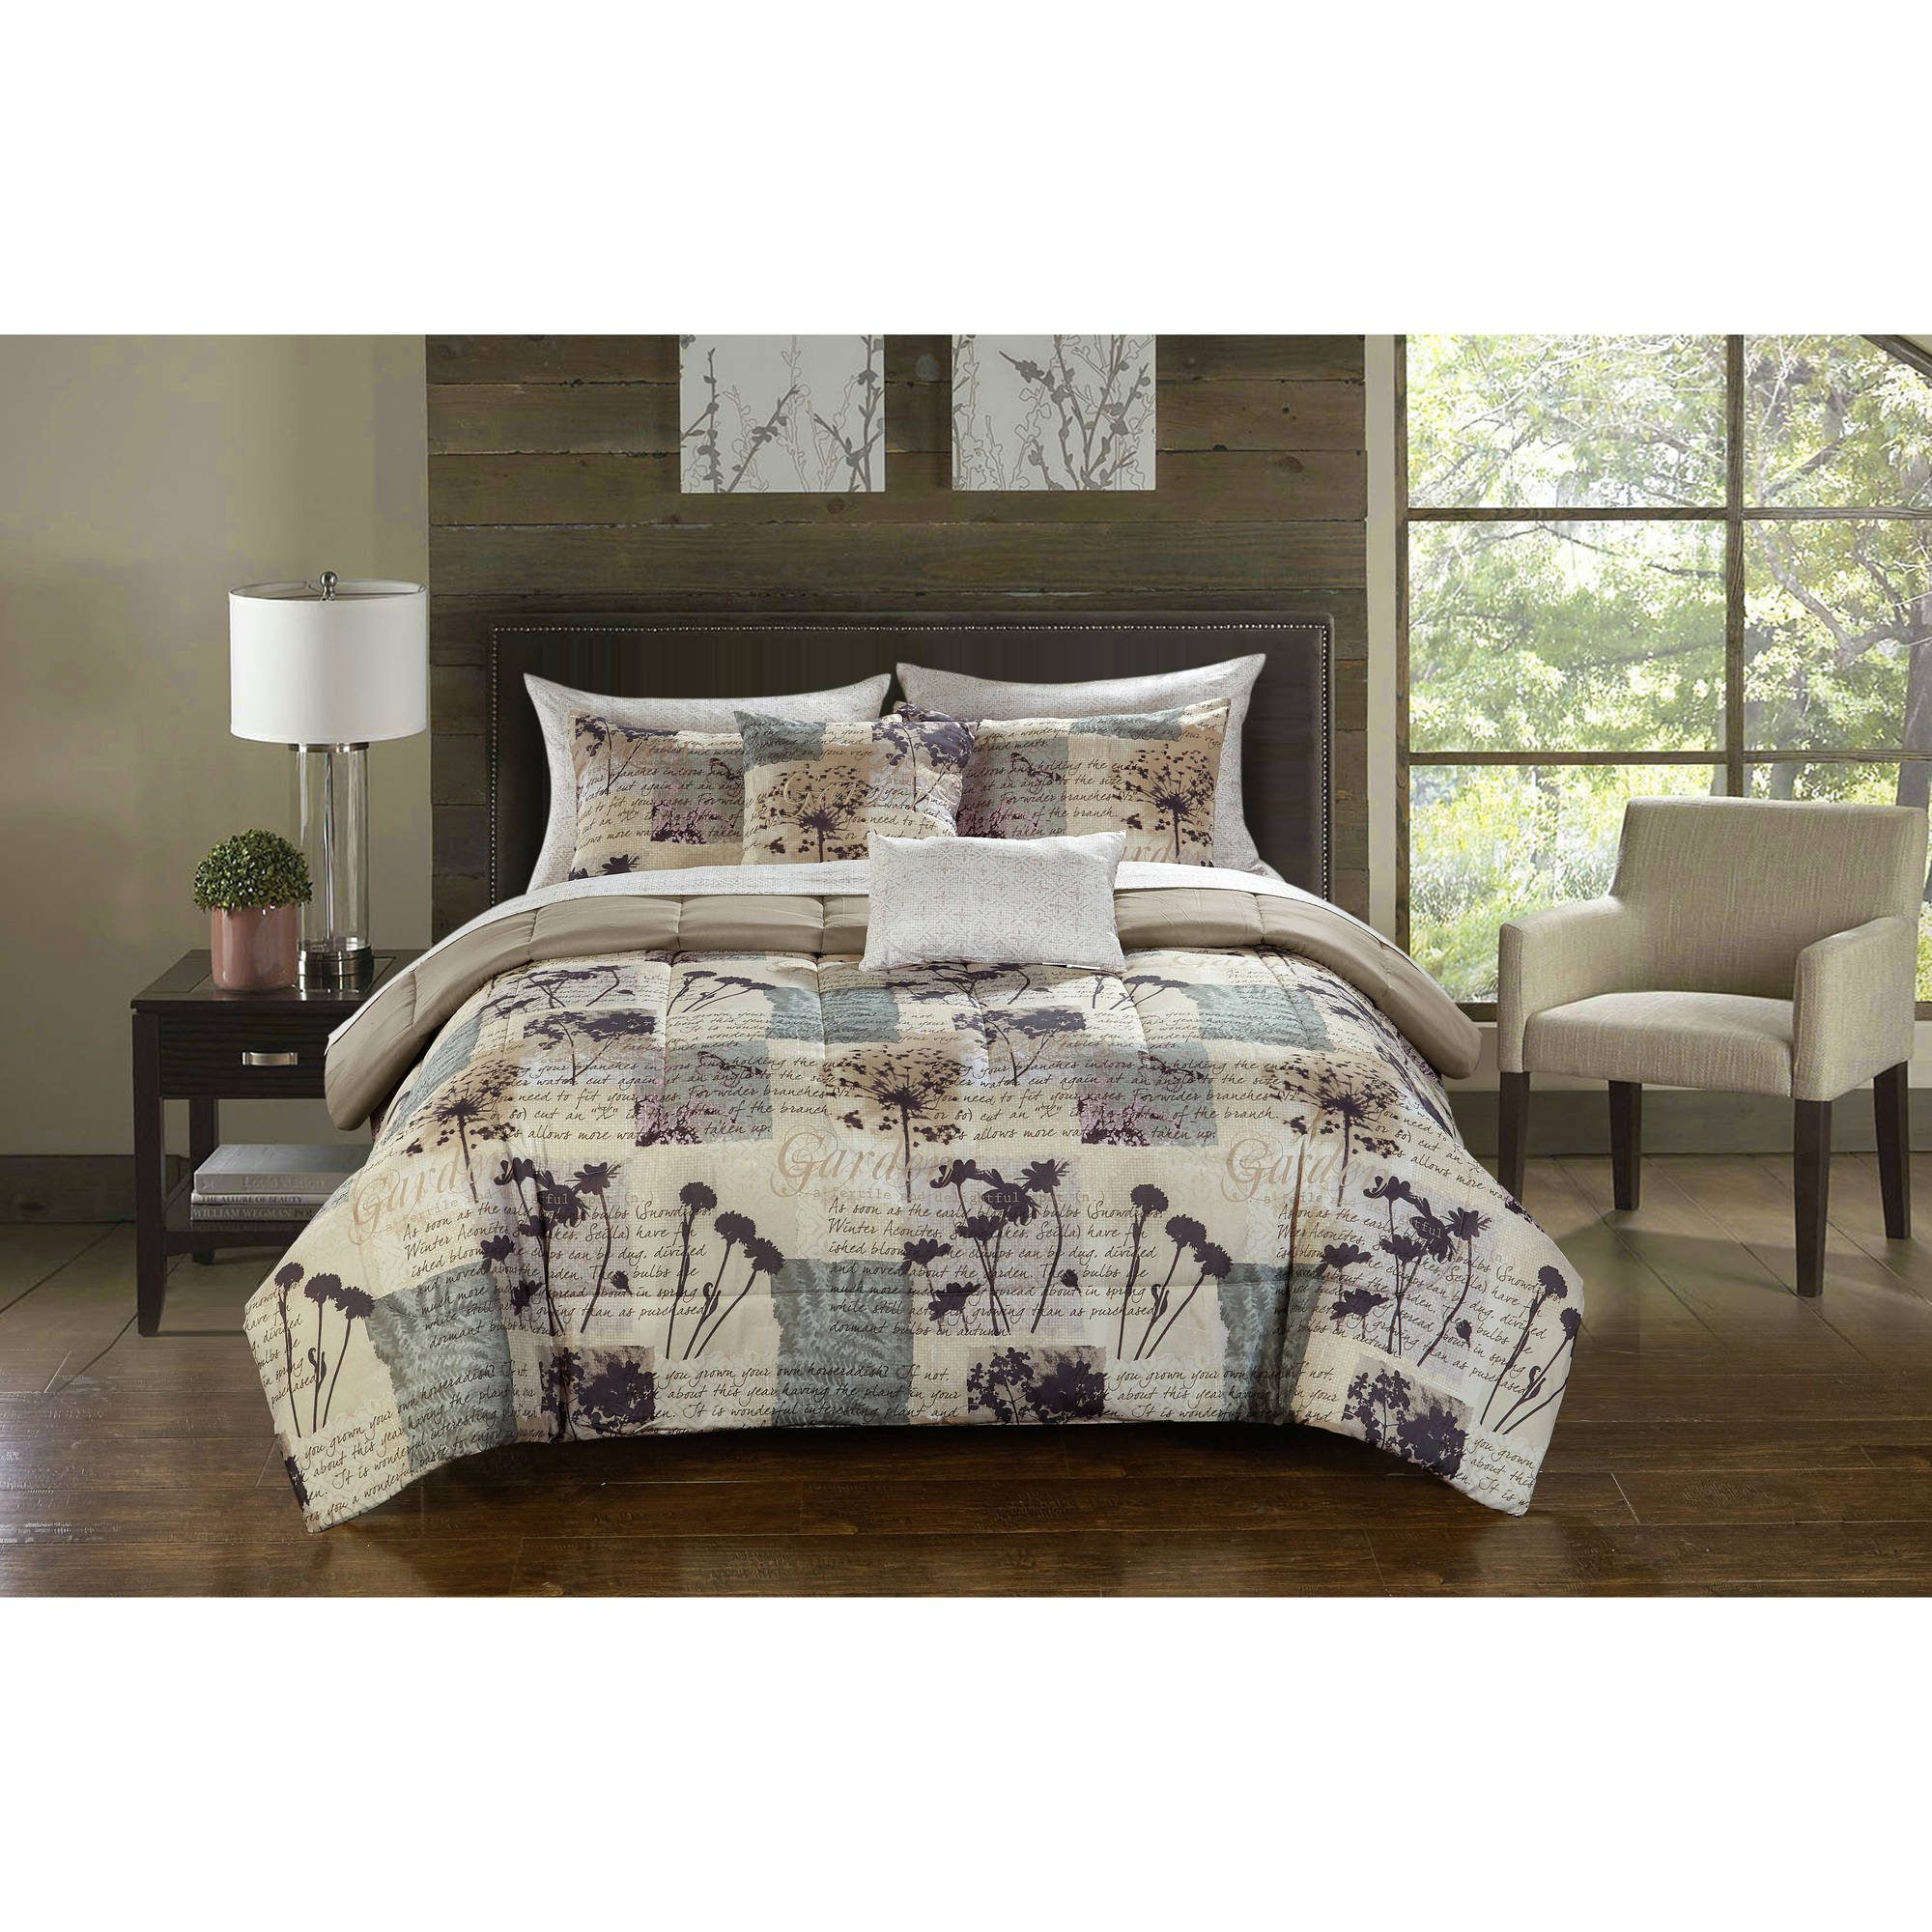 Casa Hanna Bed in a Bag Bedding Comforter Set